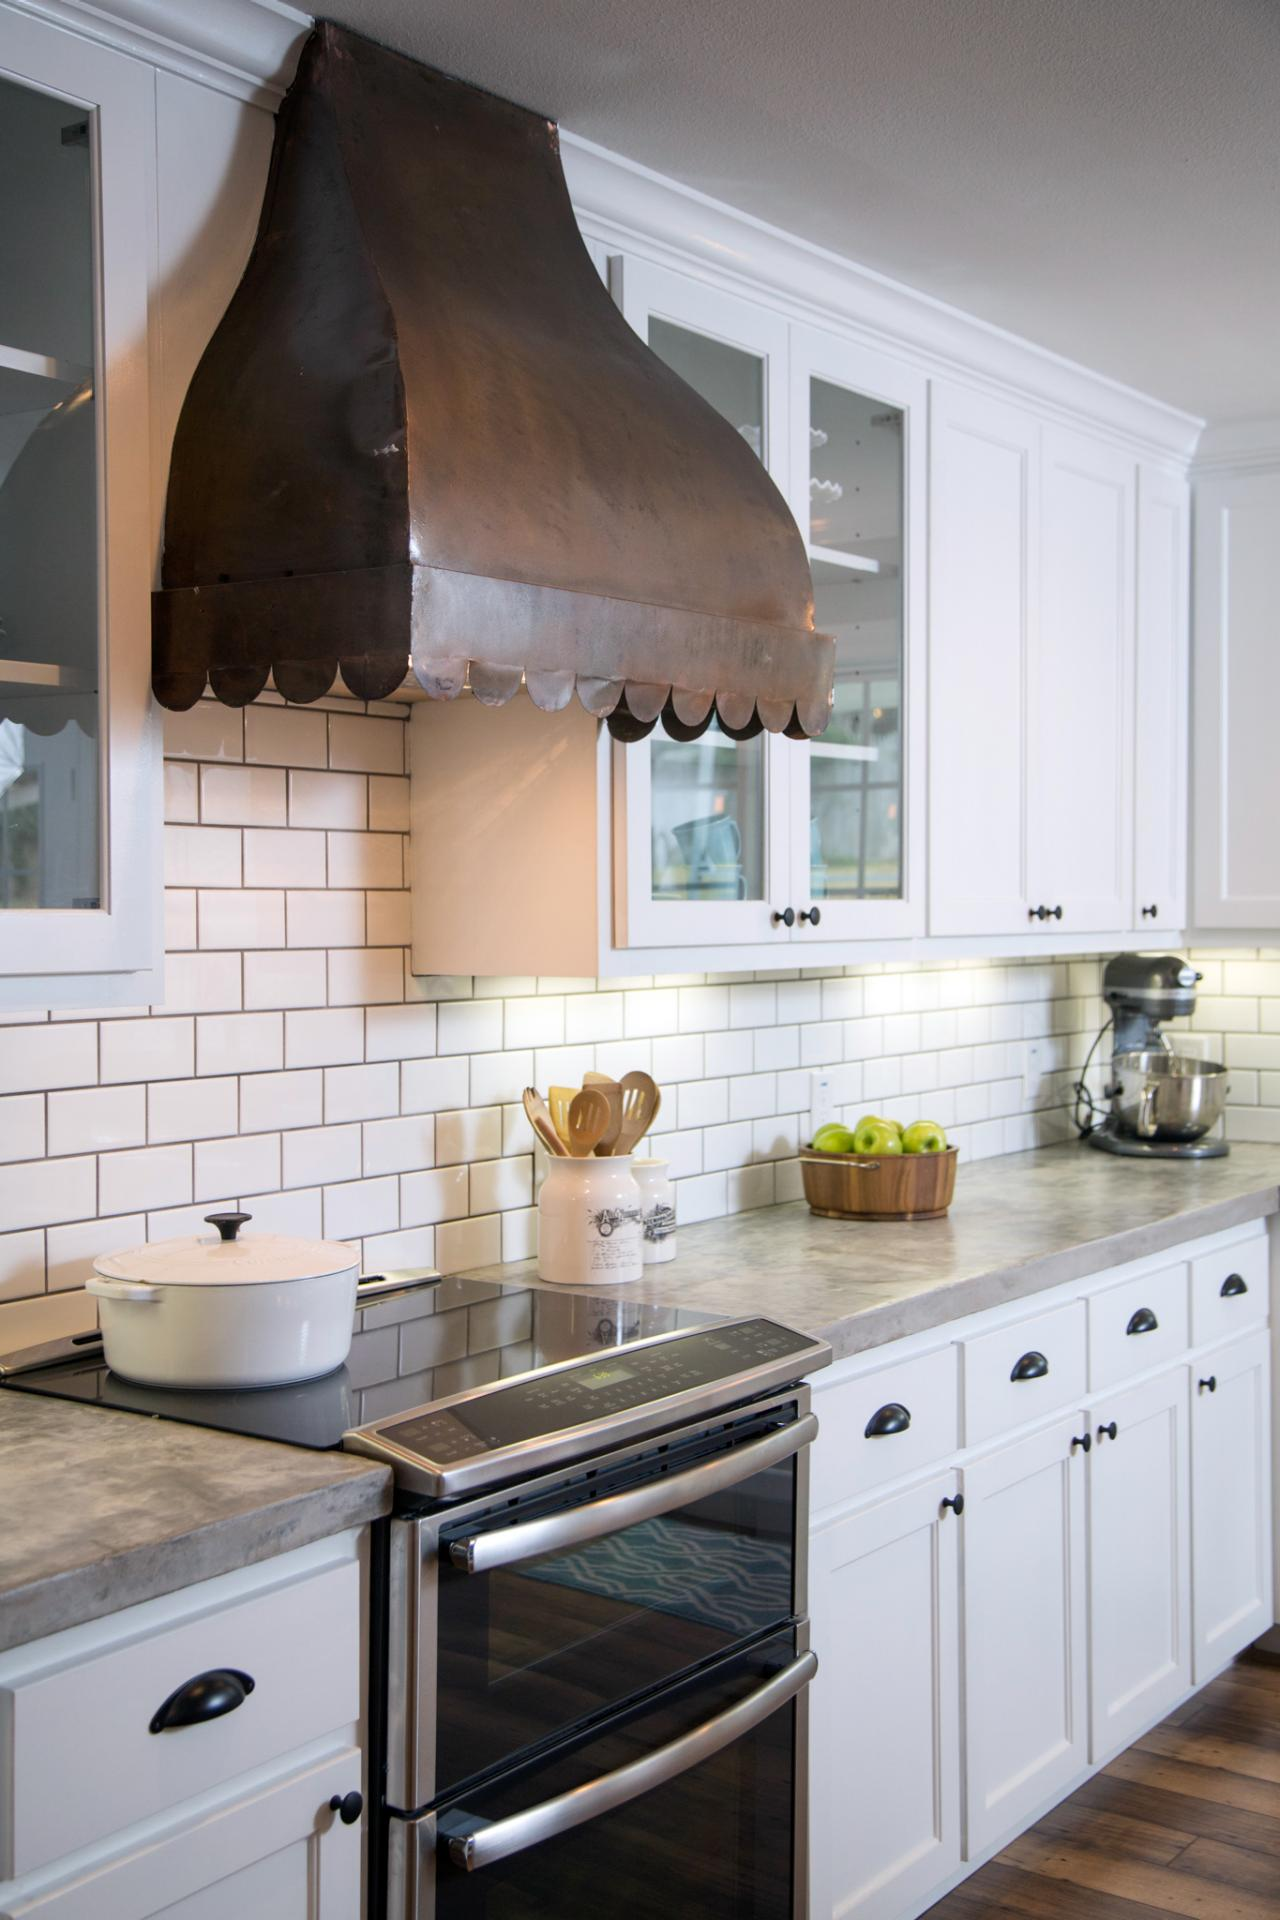 Fixer upper hgtv quotes for Hgtv kitchens